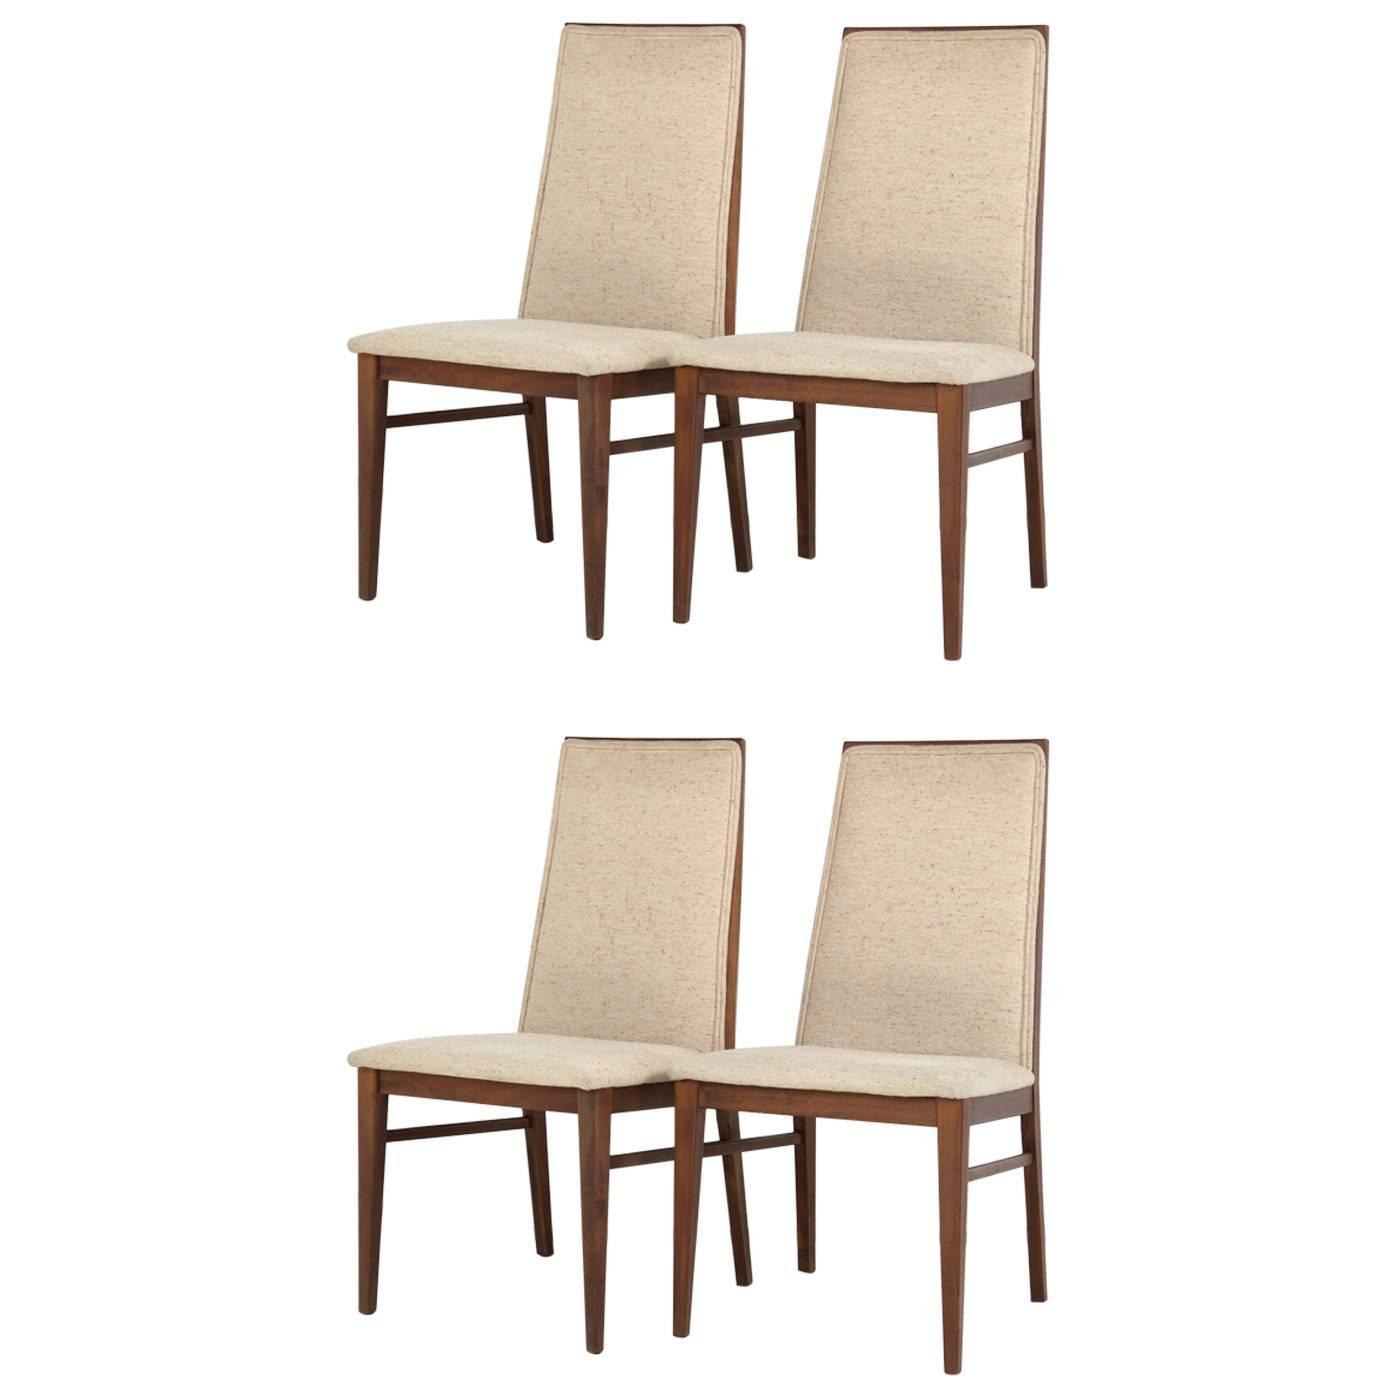 milo baughman dining chairs timed chair stand test kngf for dillingham set of four